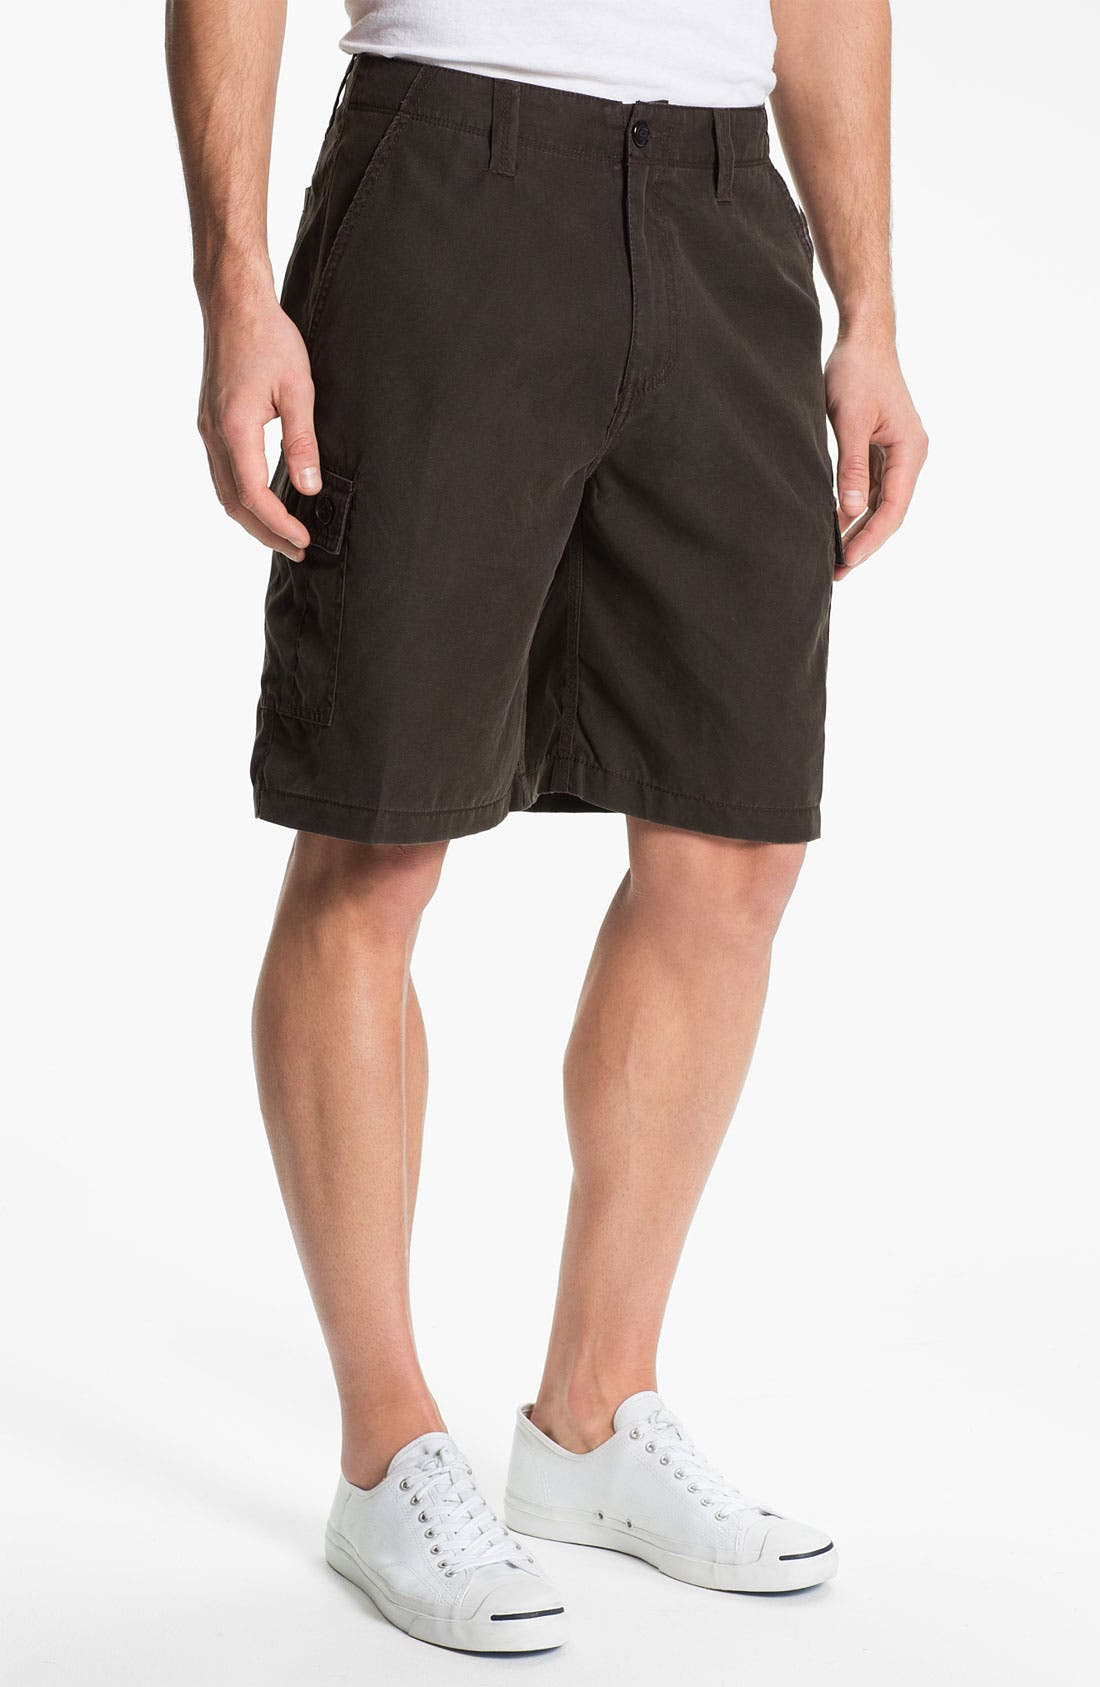 Alternate Image 1 Selected - Toes on the Nose 'Journey' Flat Front Shorts